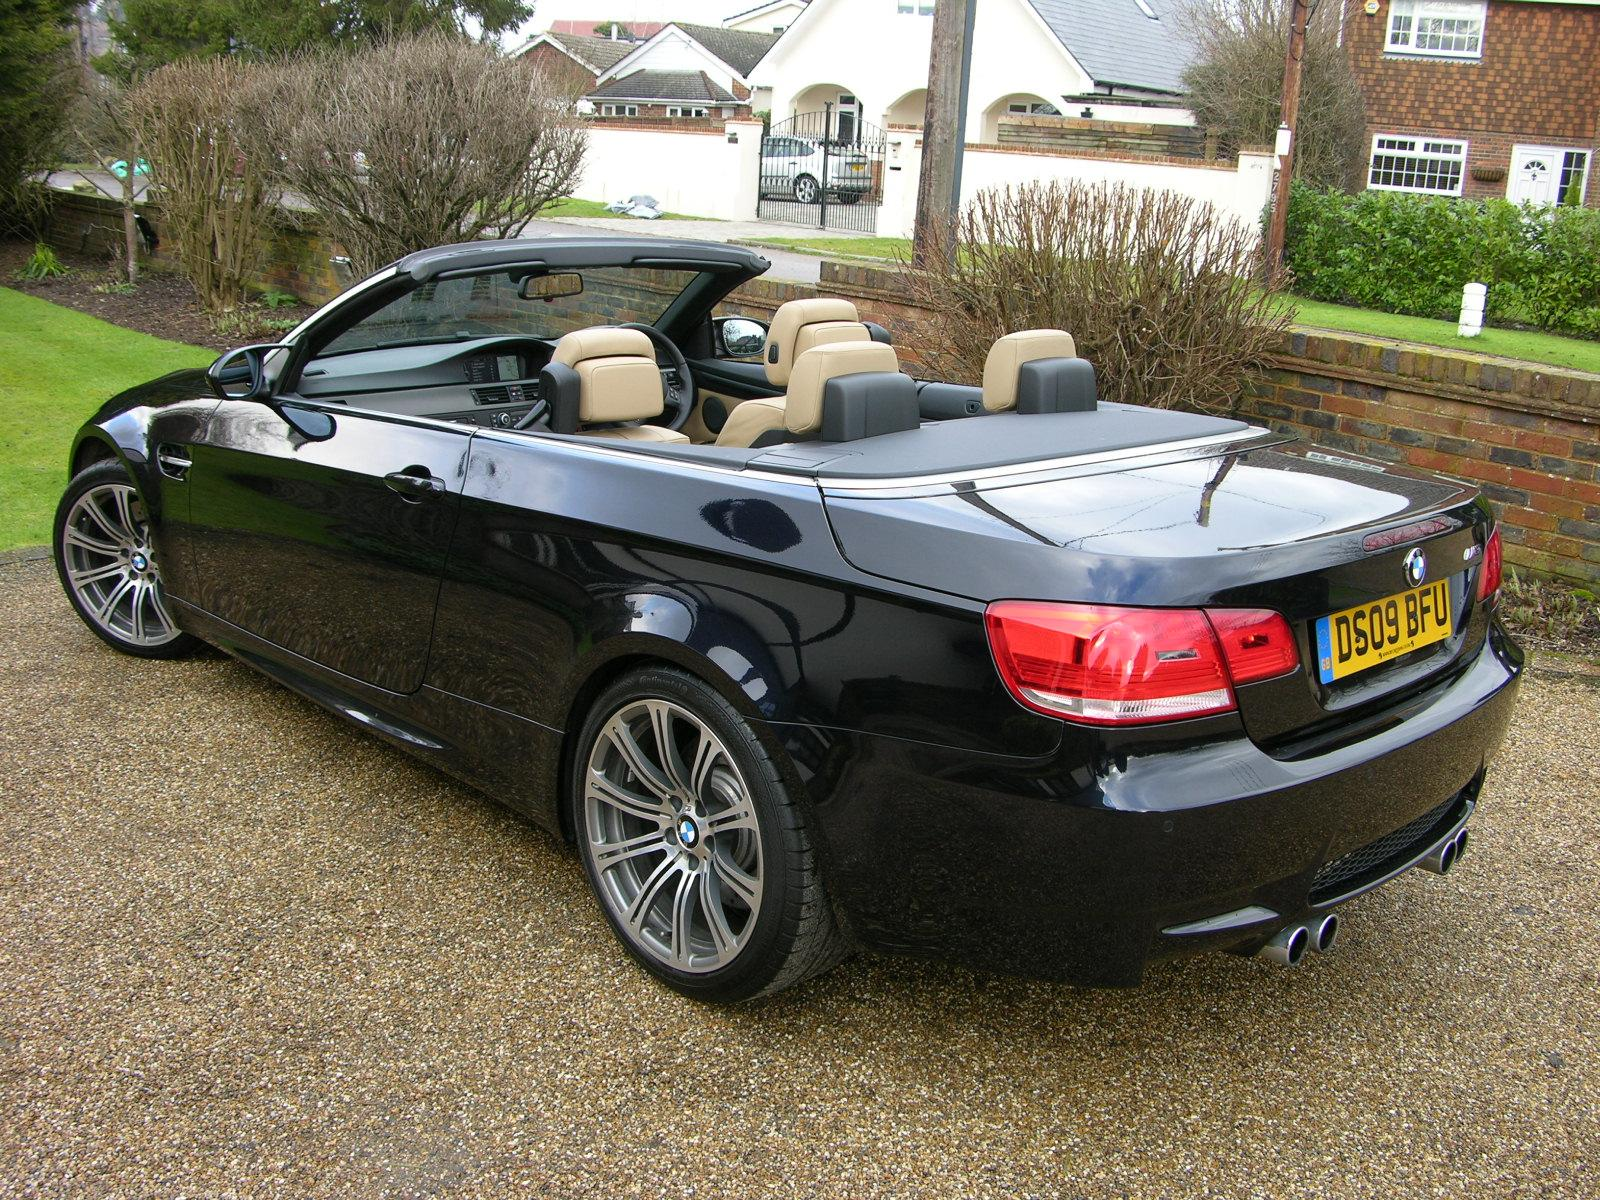 file 2009 bmw m3 cabriolet flickr the car spy 17 jpg wikimedia commons. Black Bedroom Furniture Sets. Home Design Ideas